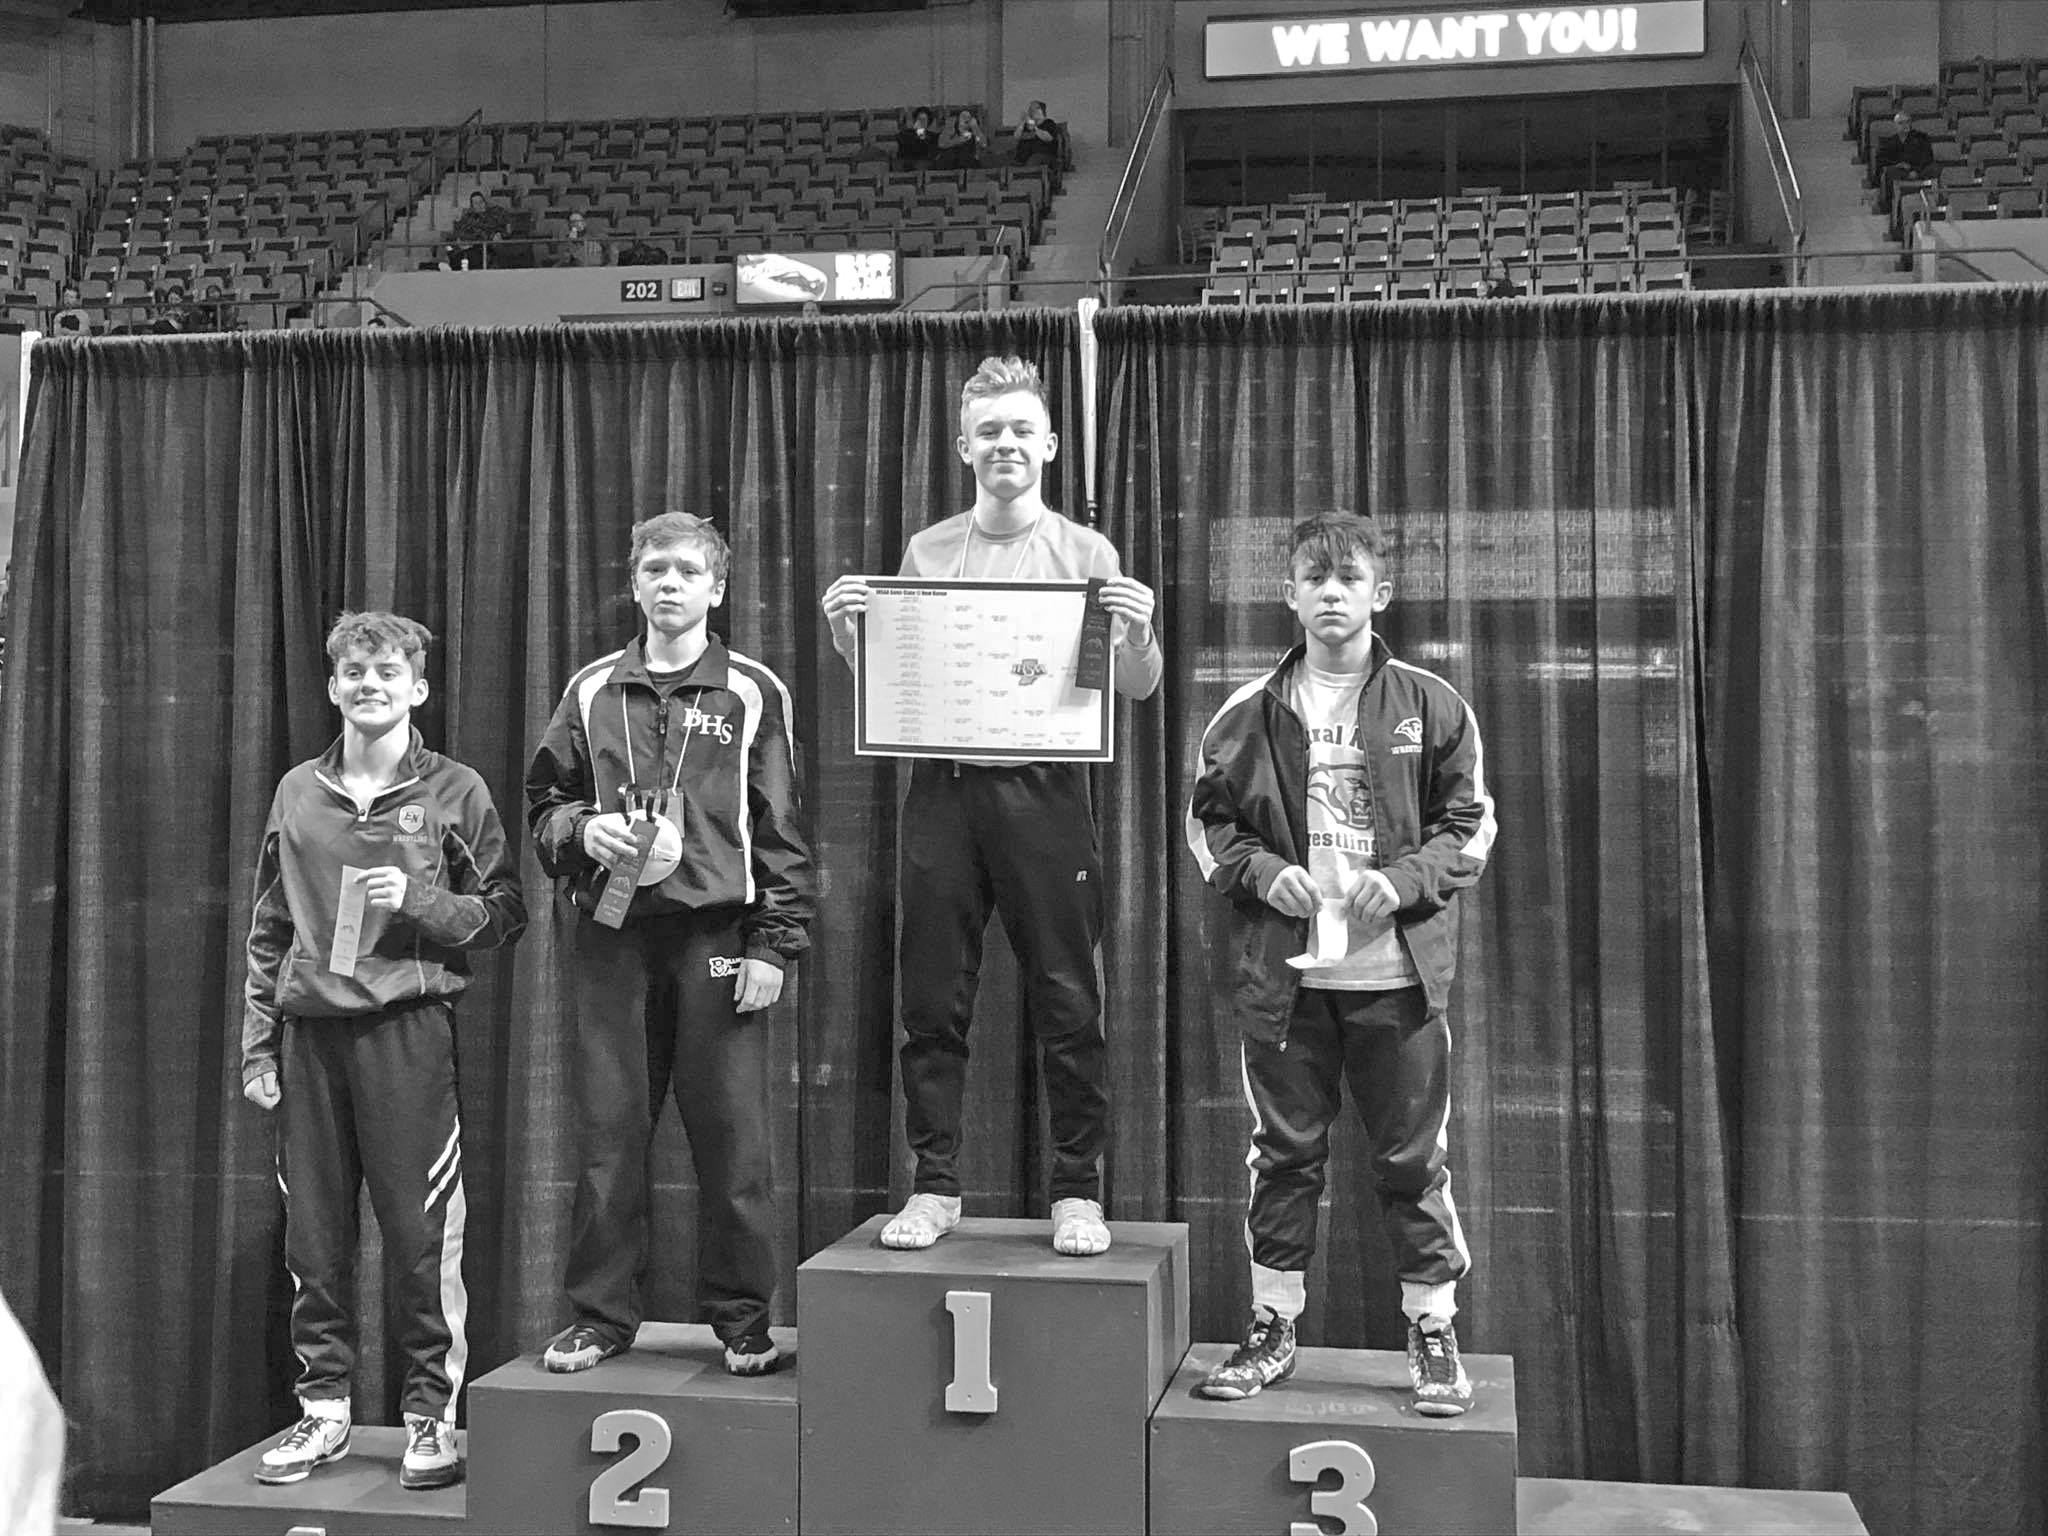 a3ae06f2ee0 Wabash s Jared Brooks shows off his ribbon and the bracket for the  106-pound weight class he won at the New Haven Semi-state wrestling tourney  to advance to ...